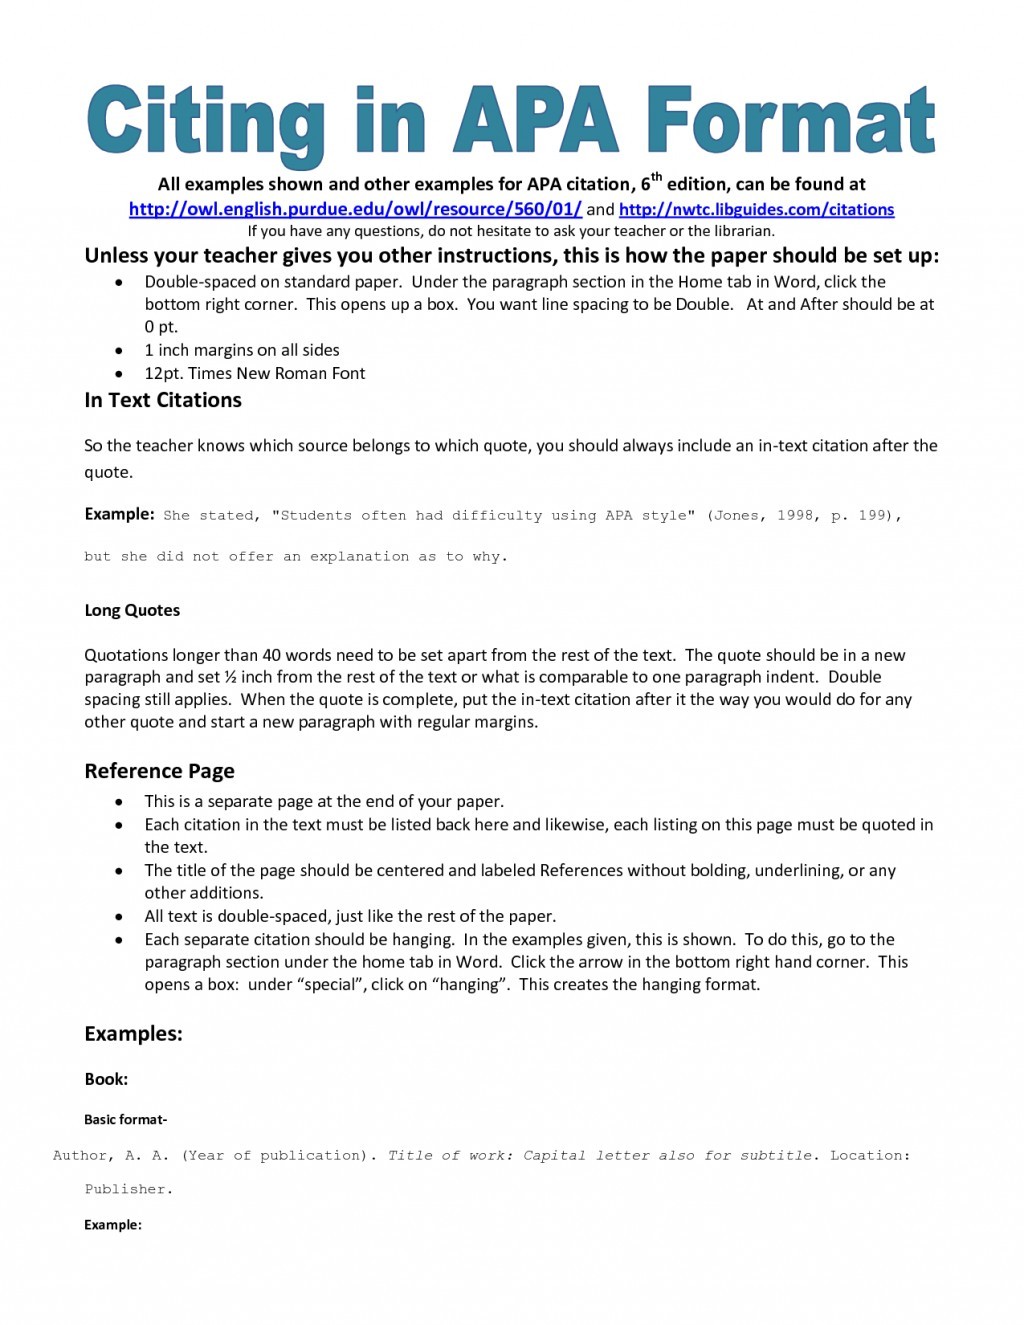 013 Buy Essay Papers Example 2778649422 Magnificent Large